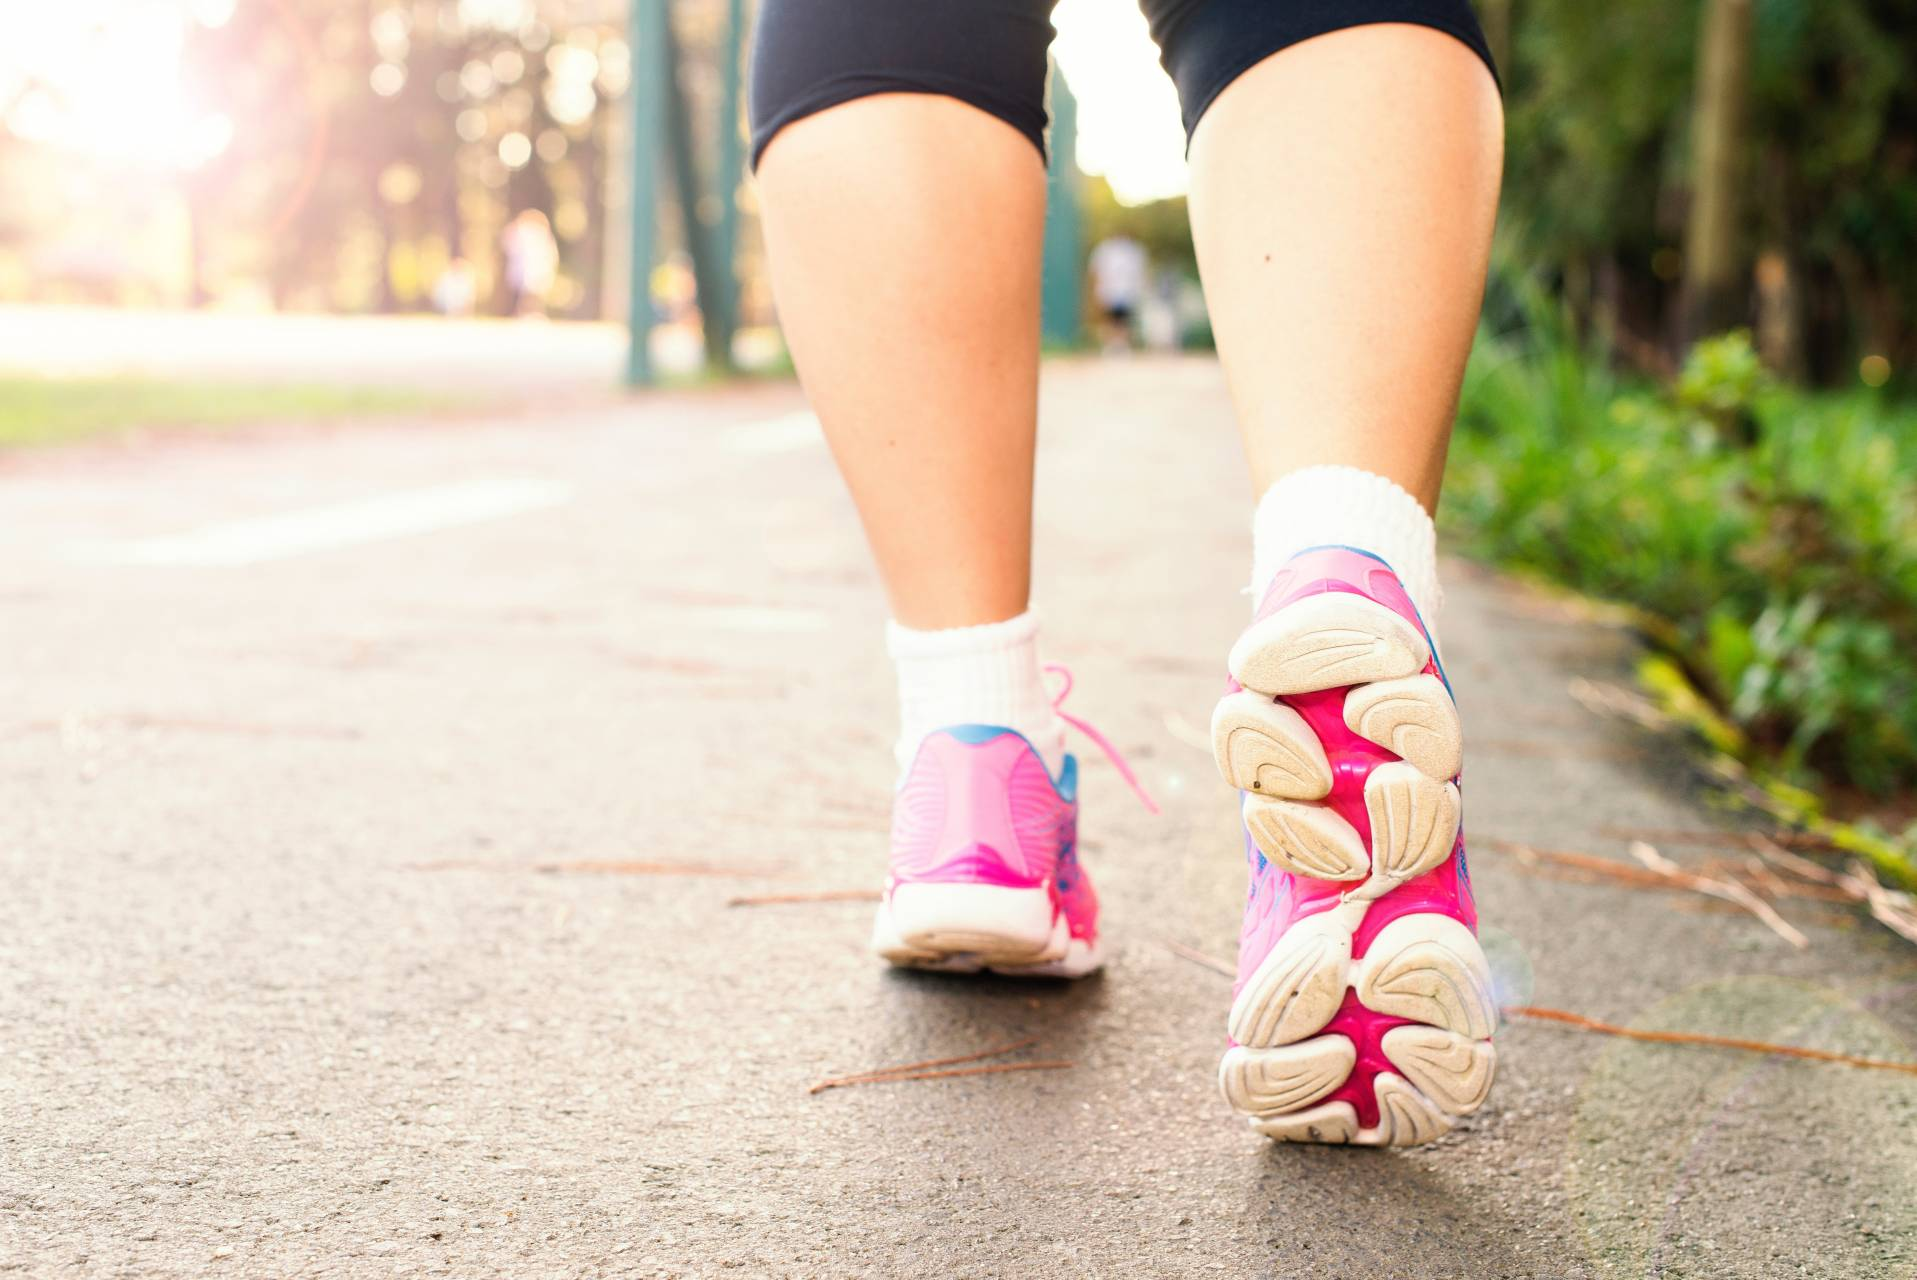 Take steps to regain your health